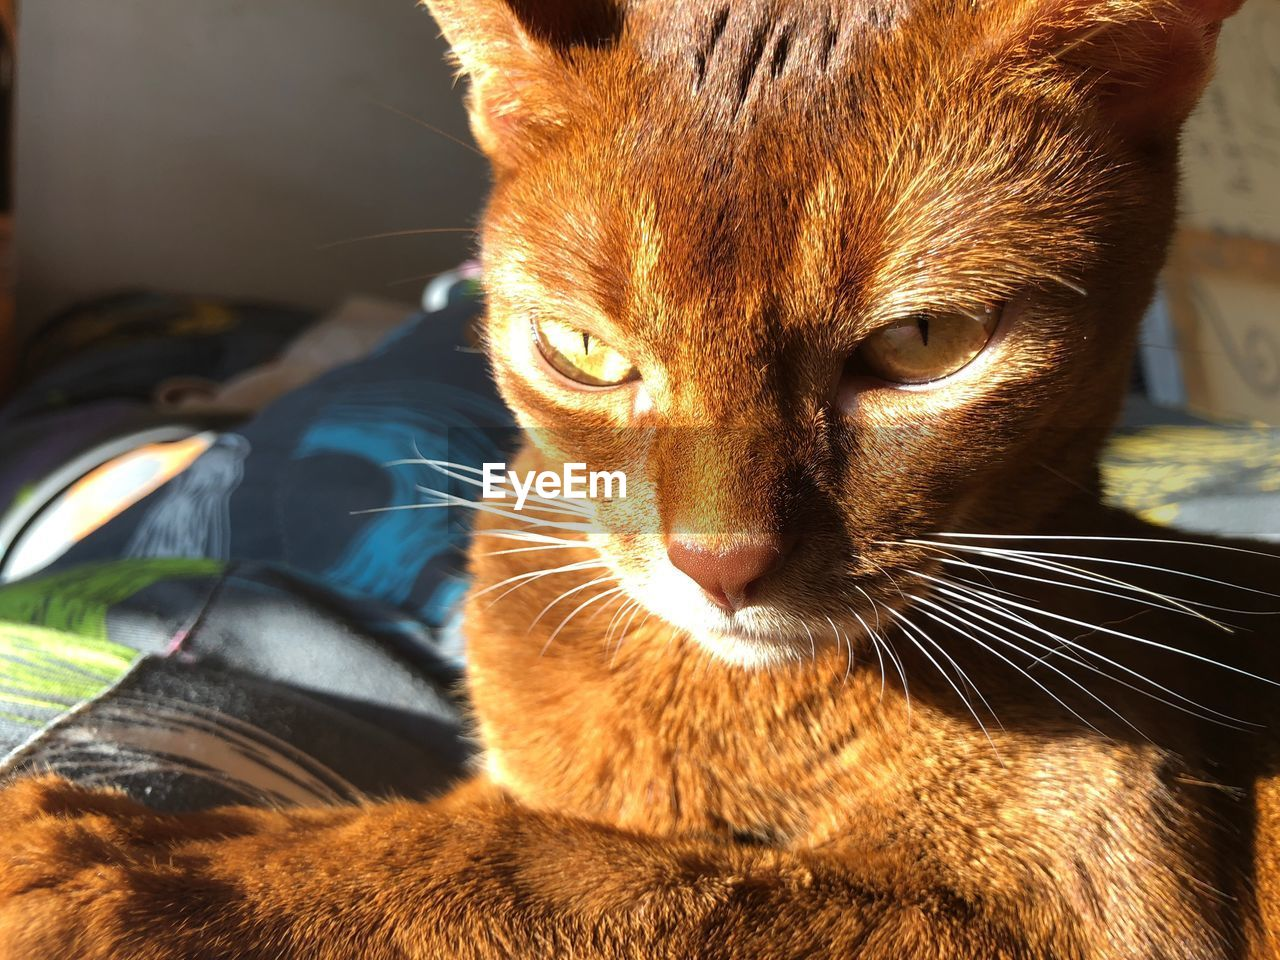 domestic, pets, domestic animals, mammal, animal, animal themes, cat, one animal, domestic cat, feline, vertebrate, close-up, whisker, no people, indoors, animal body part, looking away, focus on foreground, looking, portrait, animal head, ginger cat, animal eye, tabby